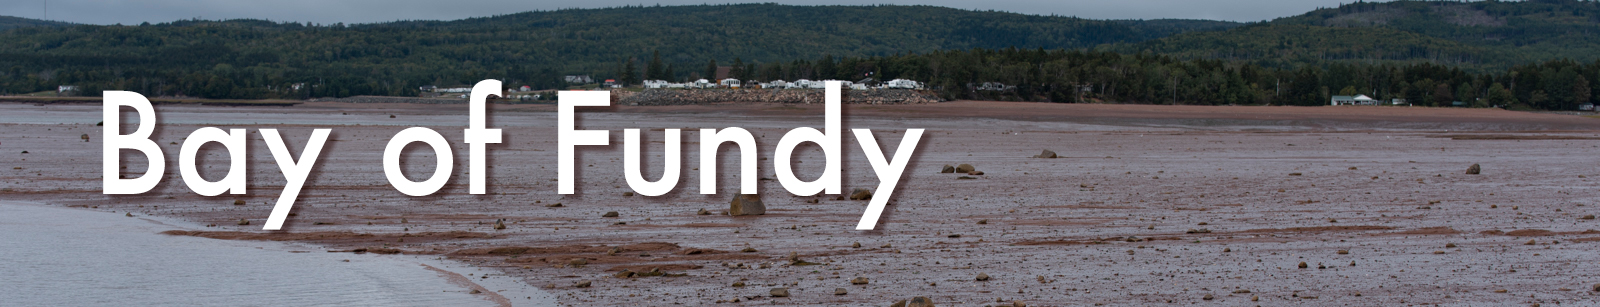 fundy-header.jpg